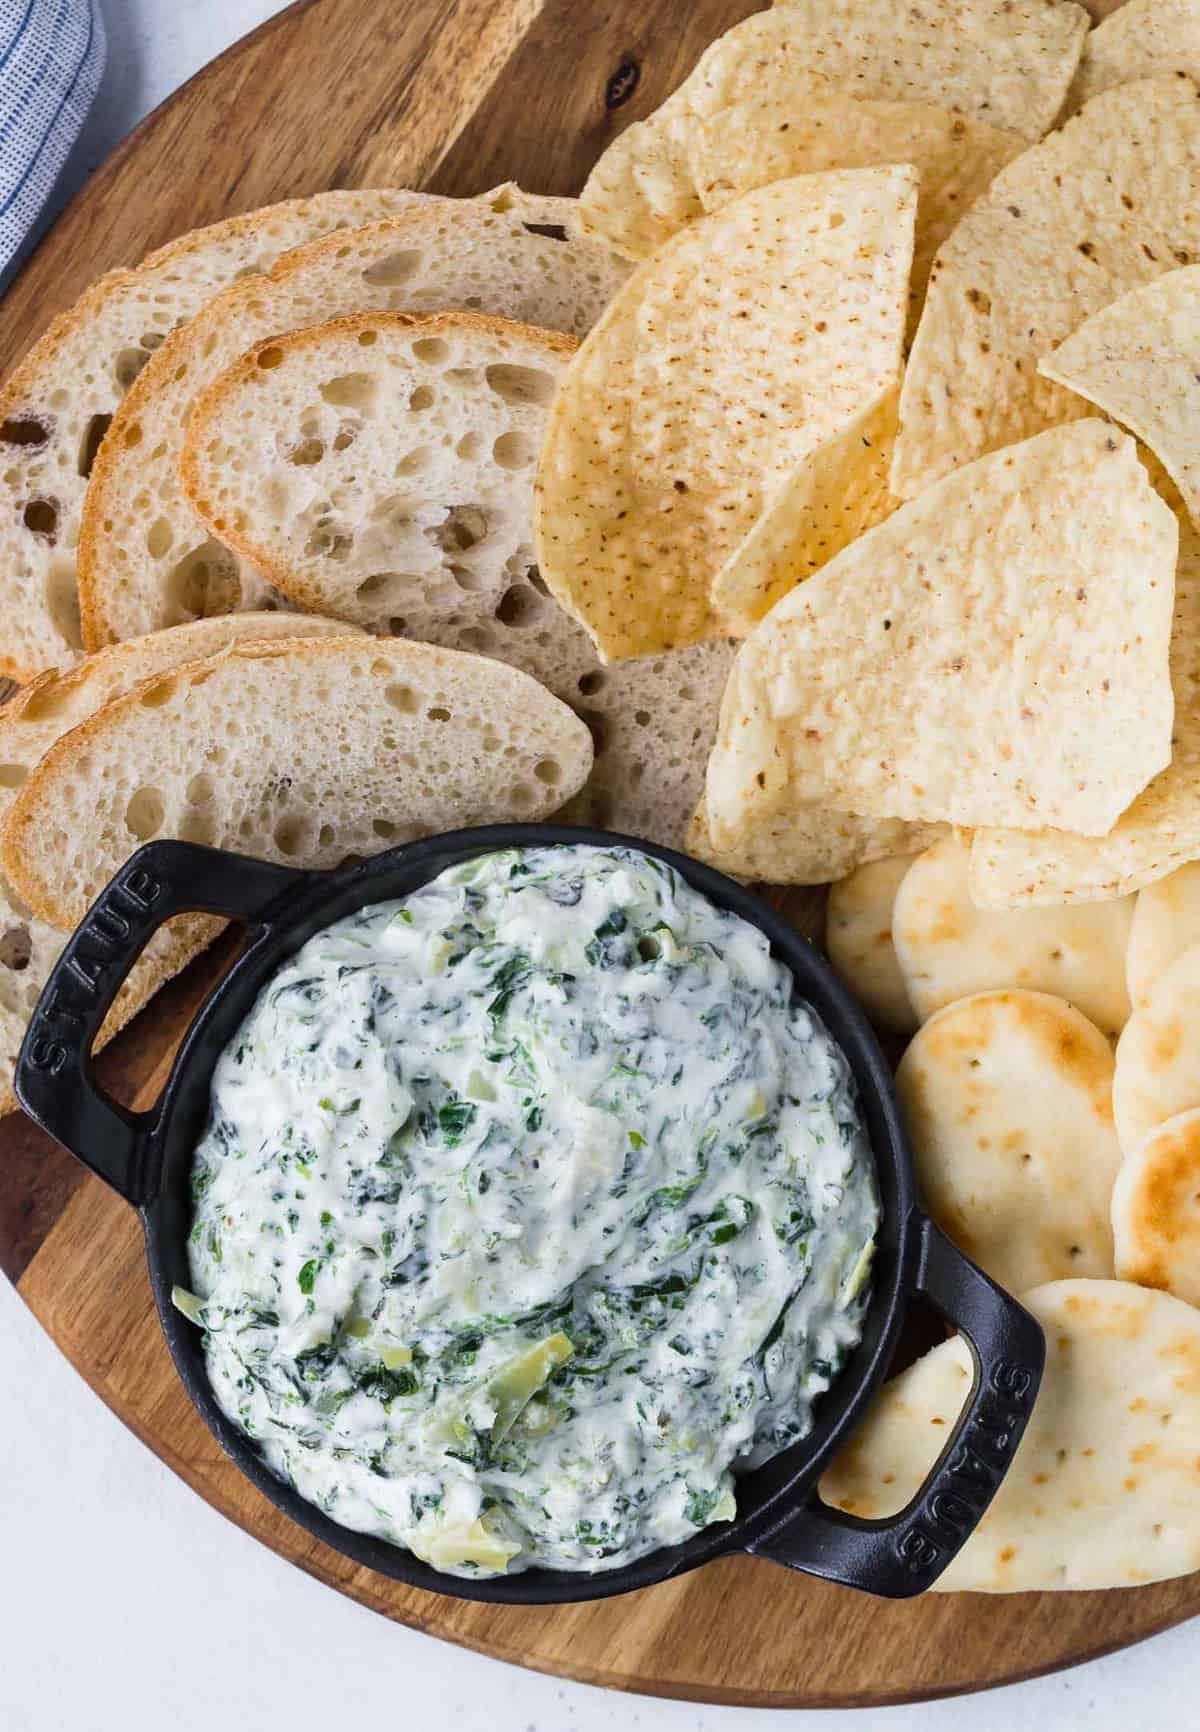 Overhead view of a small black dish of dip made with spinach and artichokes, surrounded by chips and bread.